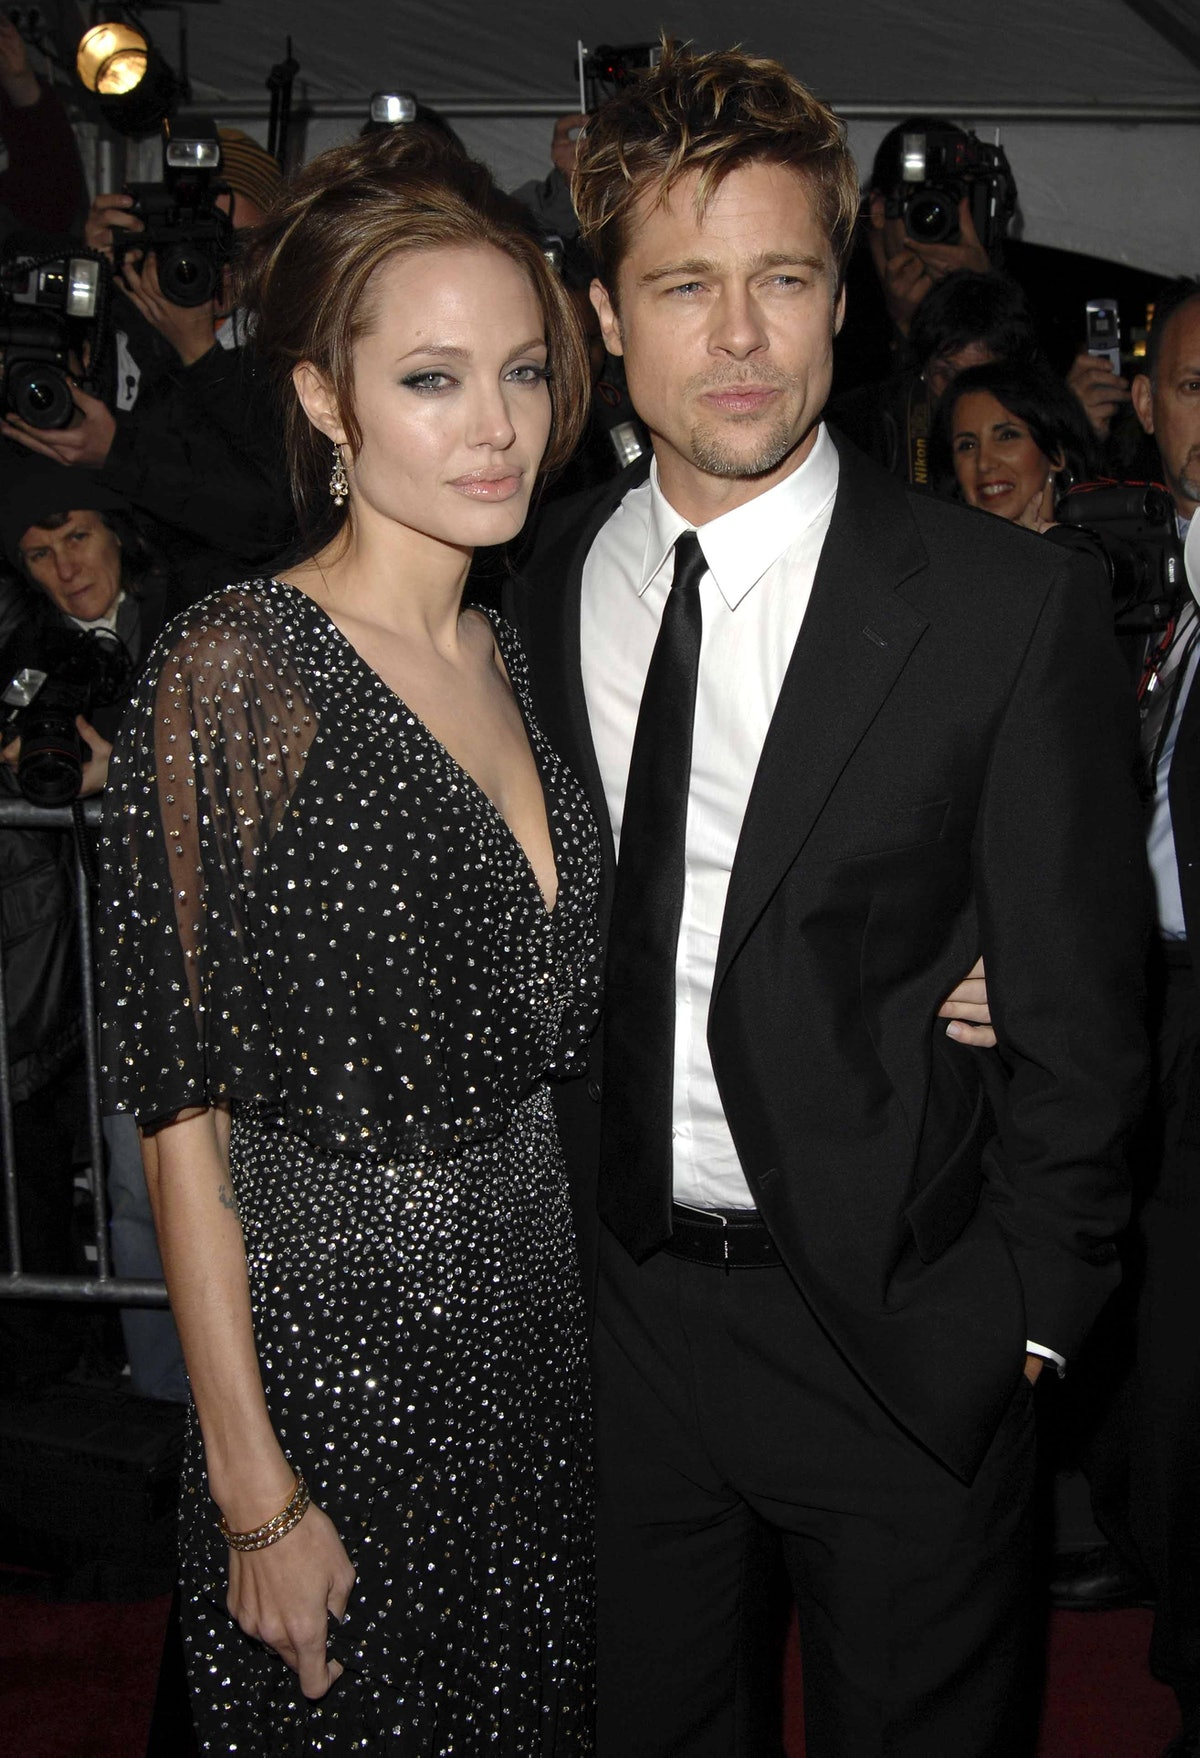 Jennifer Aniston and Brad Pitt's break up in 2005 left a huge impact on pop culture, causing fans to...